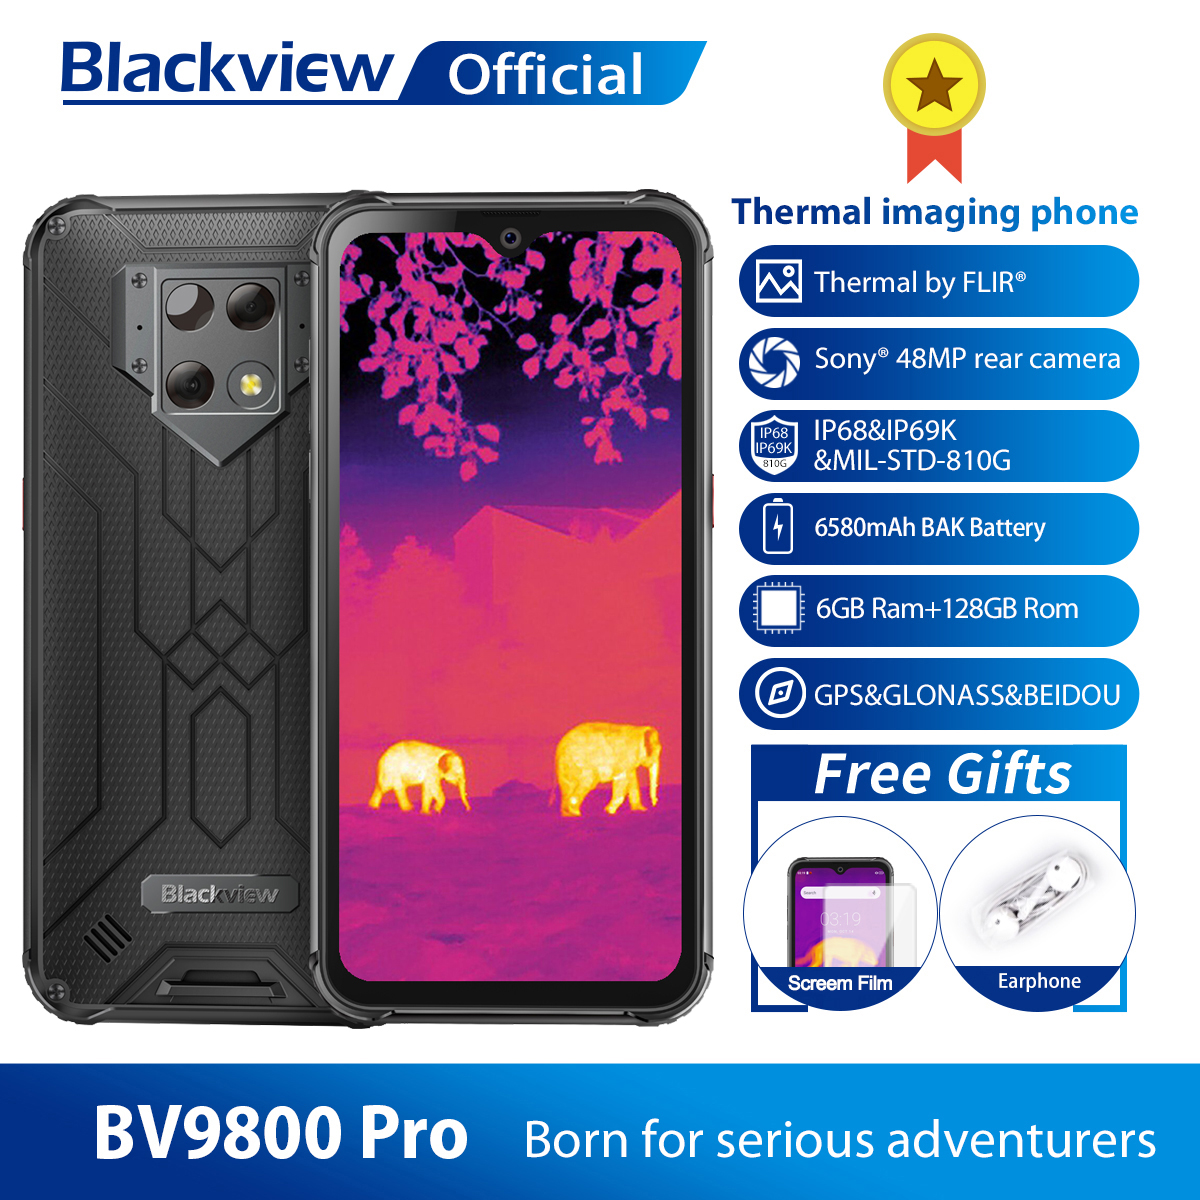 Blackview BV9800 Pro Thermal Camera Mobile Phone Helio P70 Android 9.0 6GB+128GB IP68 Waterproof 6580mAh Rugged Smartphone 1